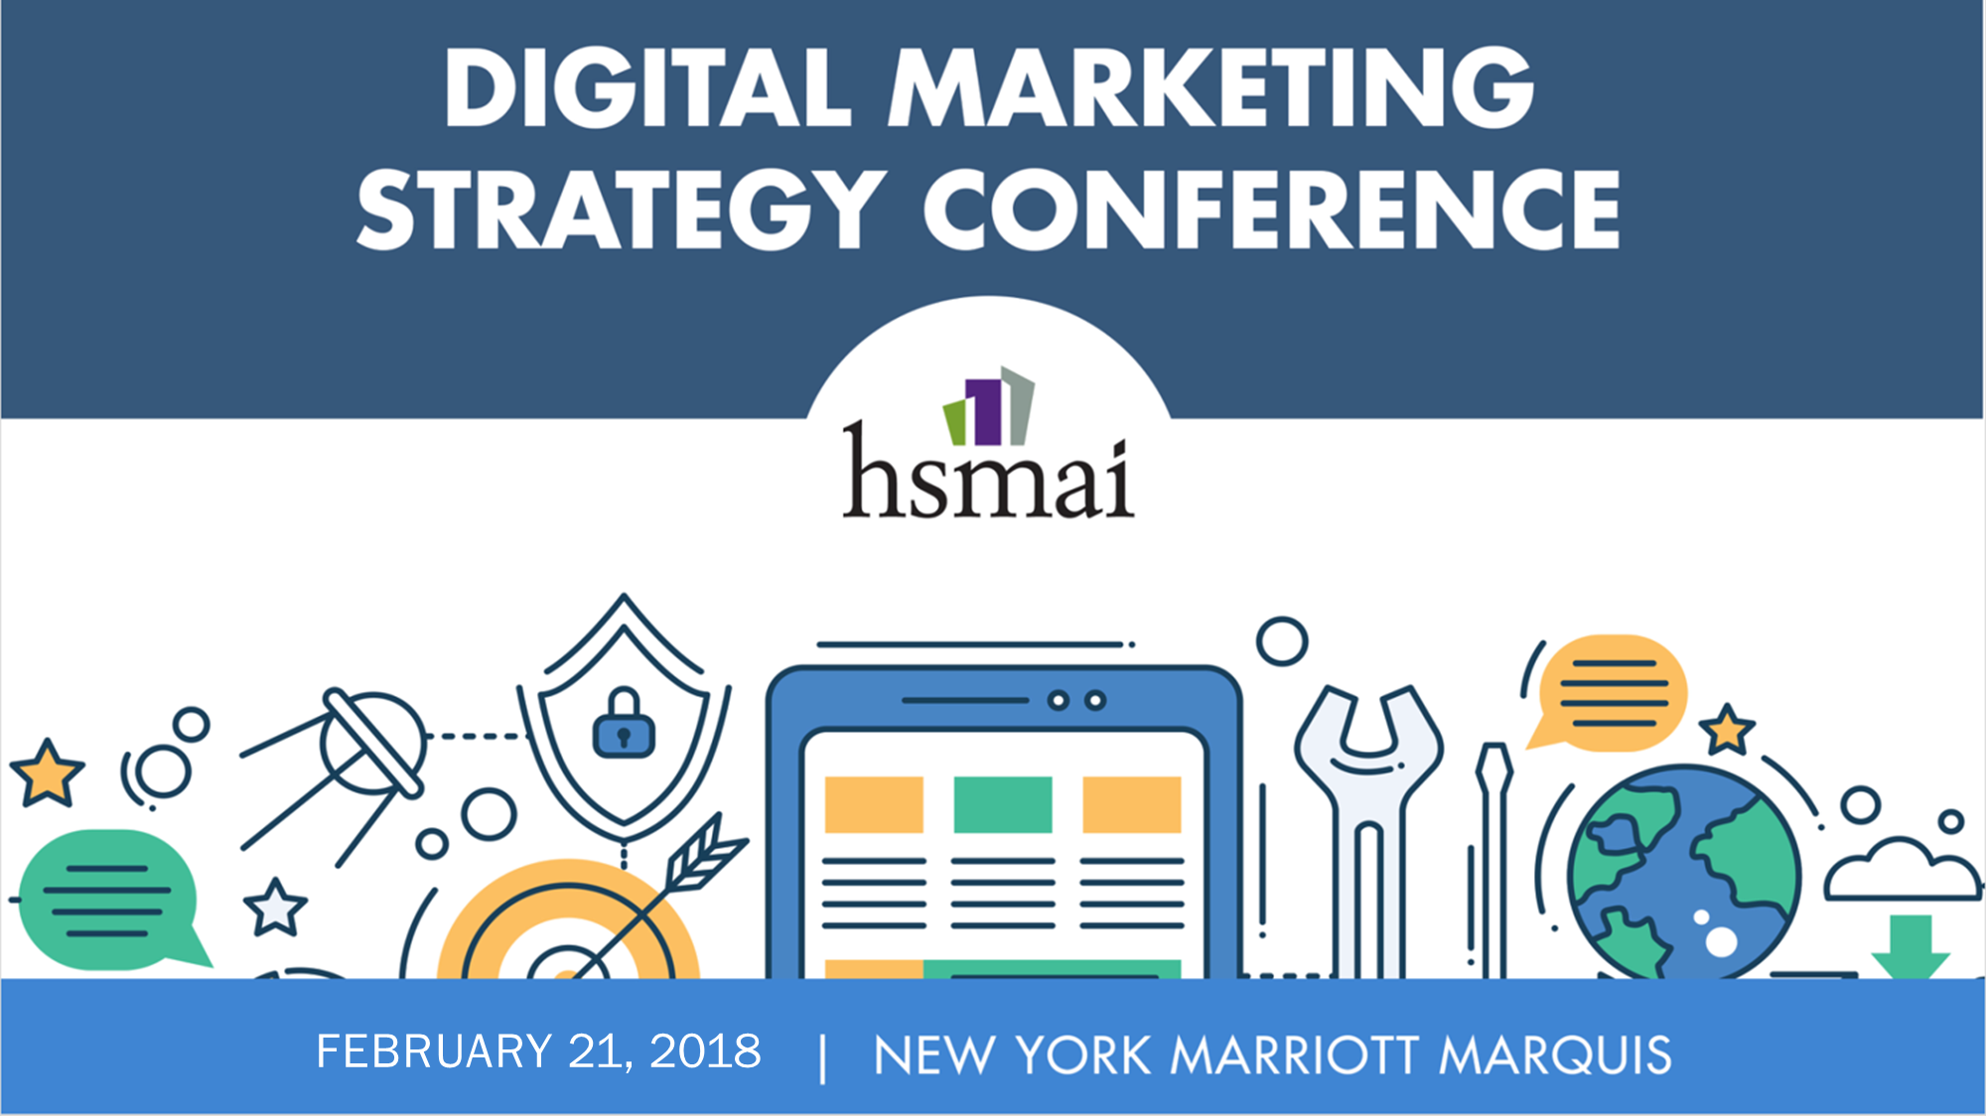 hsmai digital strategy conference 2018.png